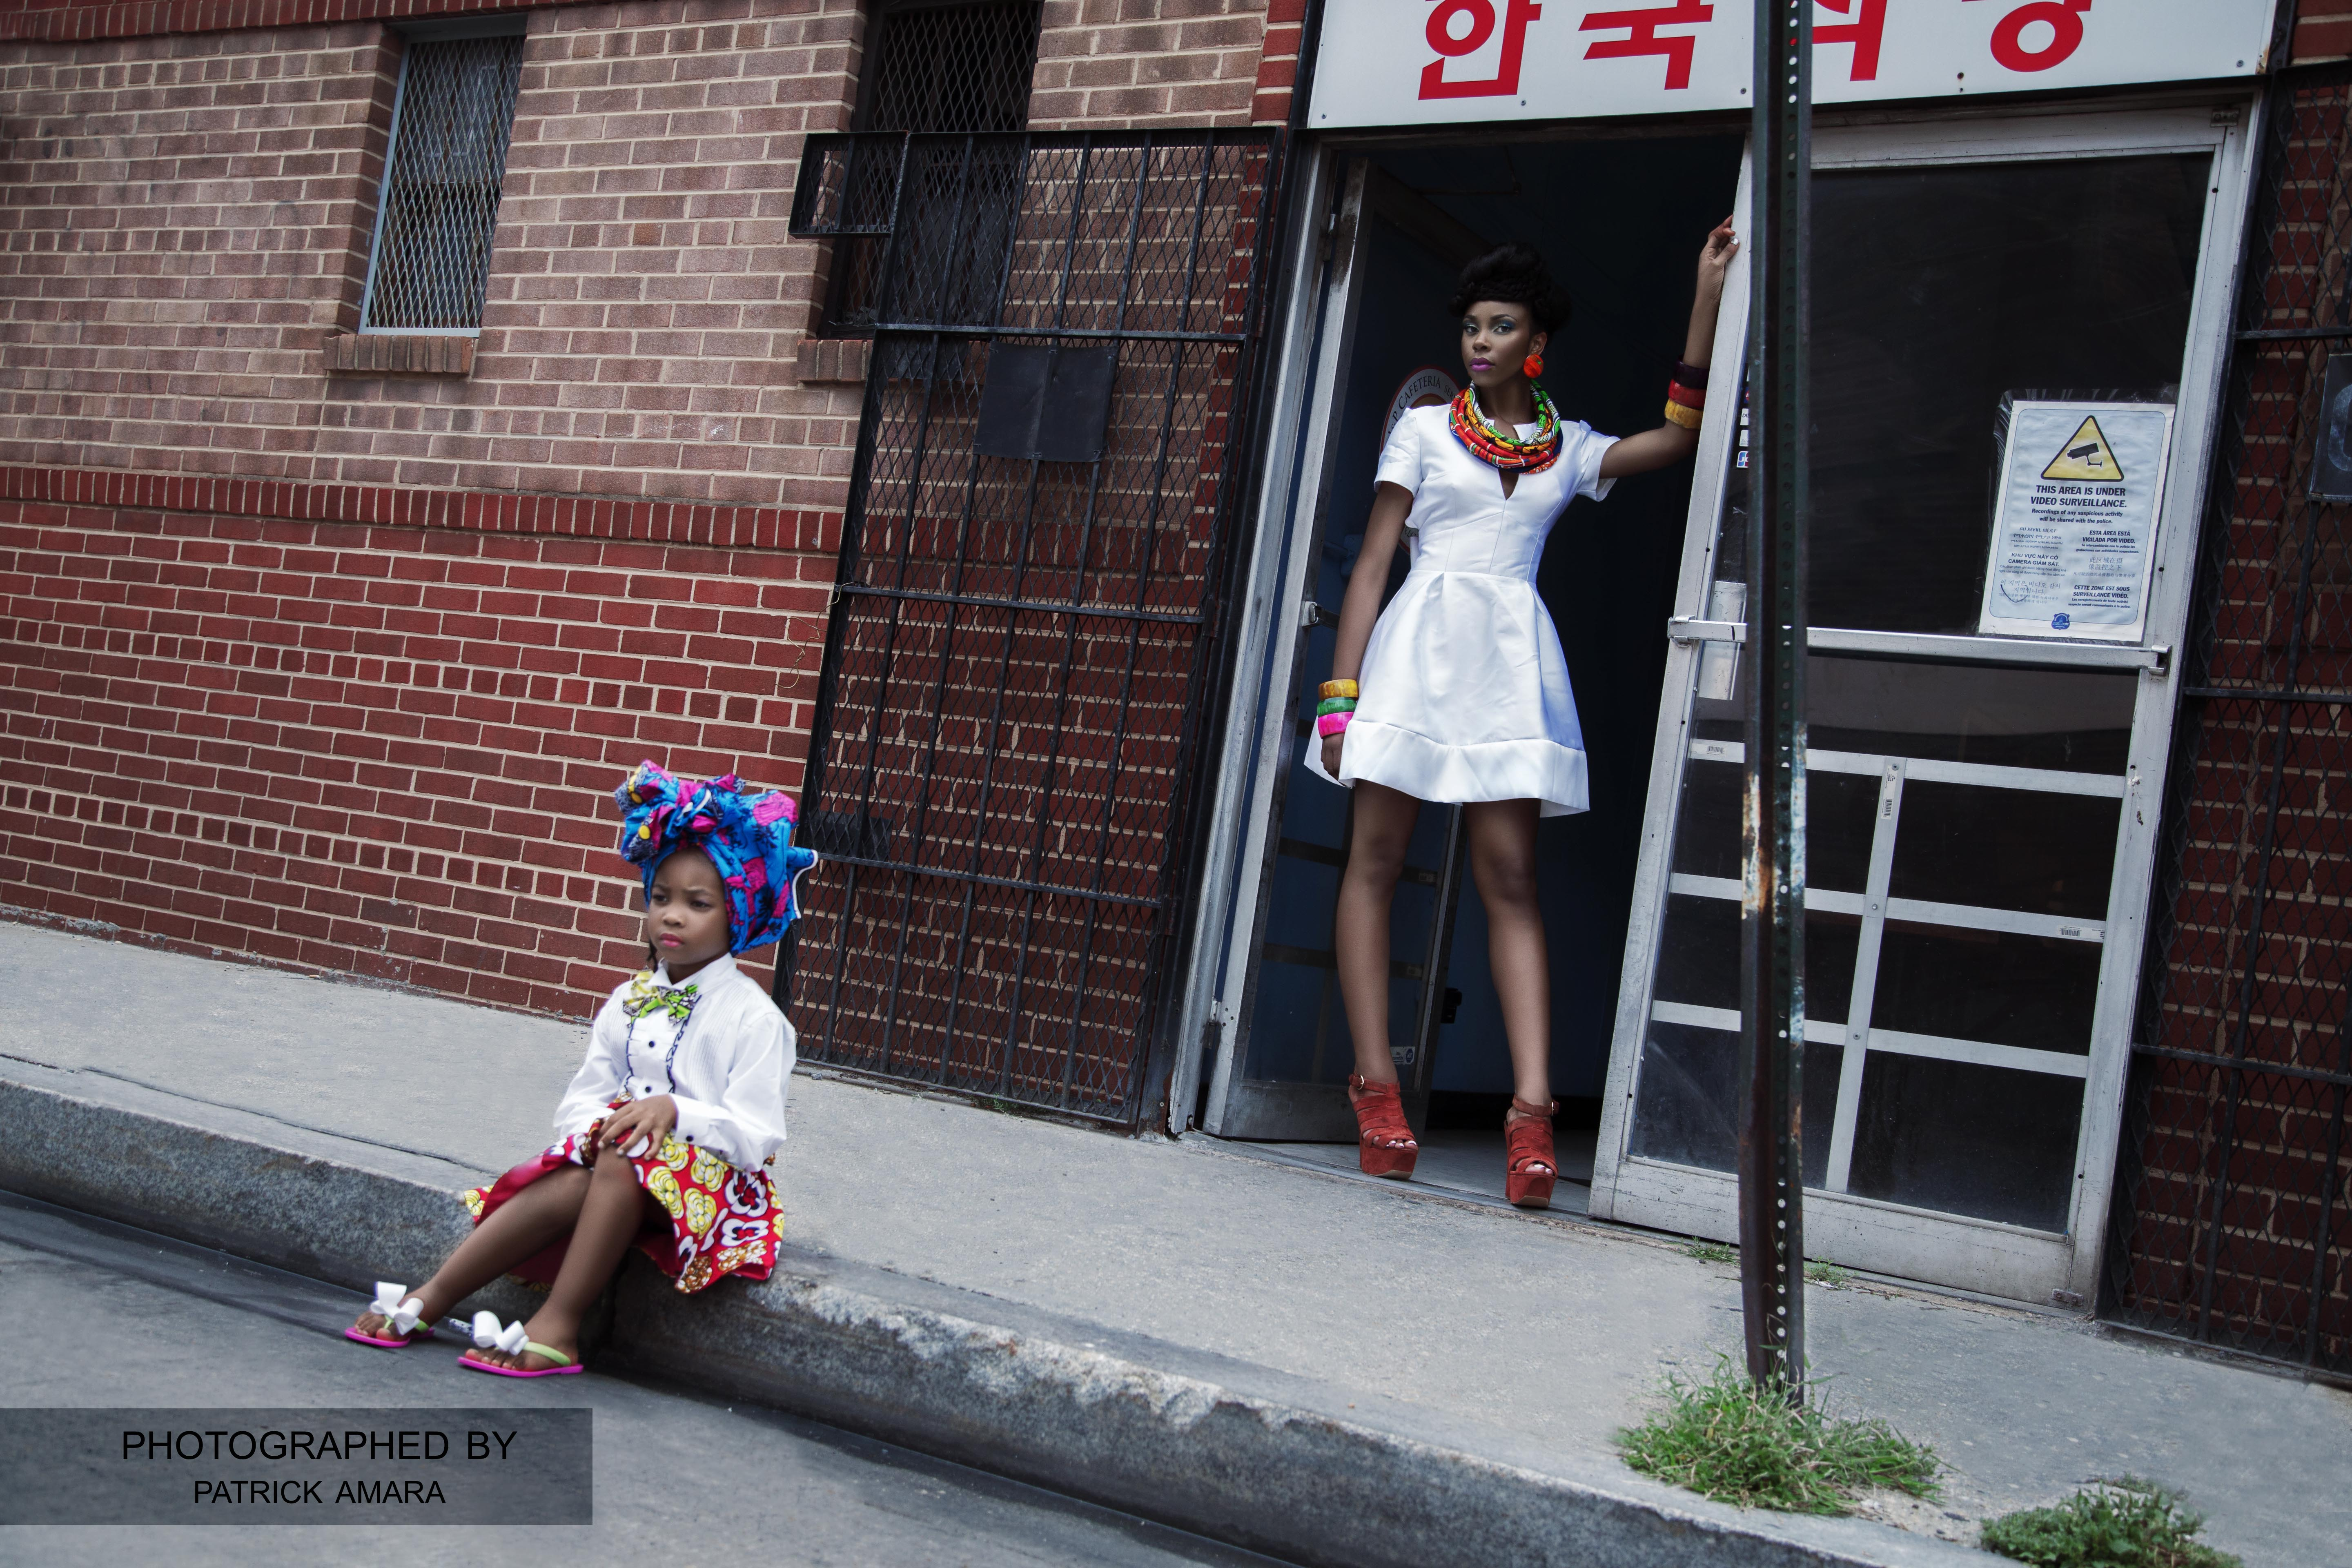 editorial-%22soldiers-in-the-city%22-by-patrick-amara-photography-3